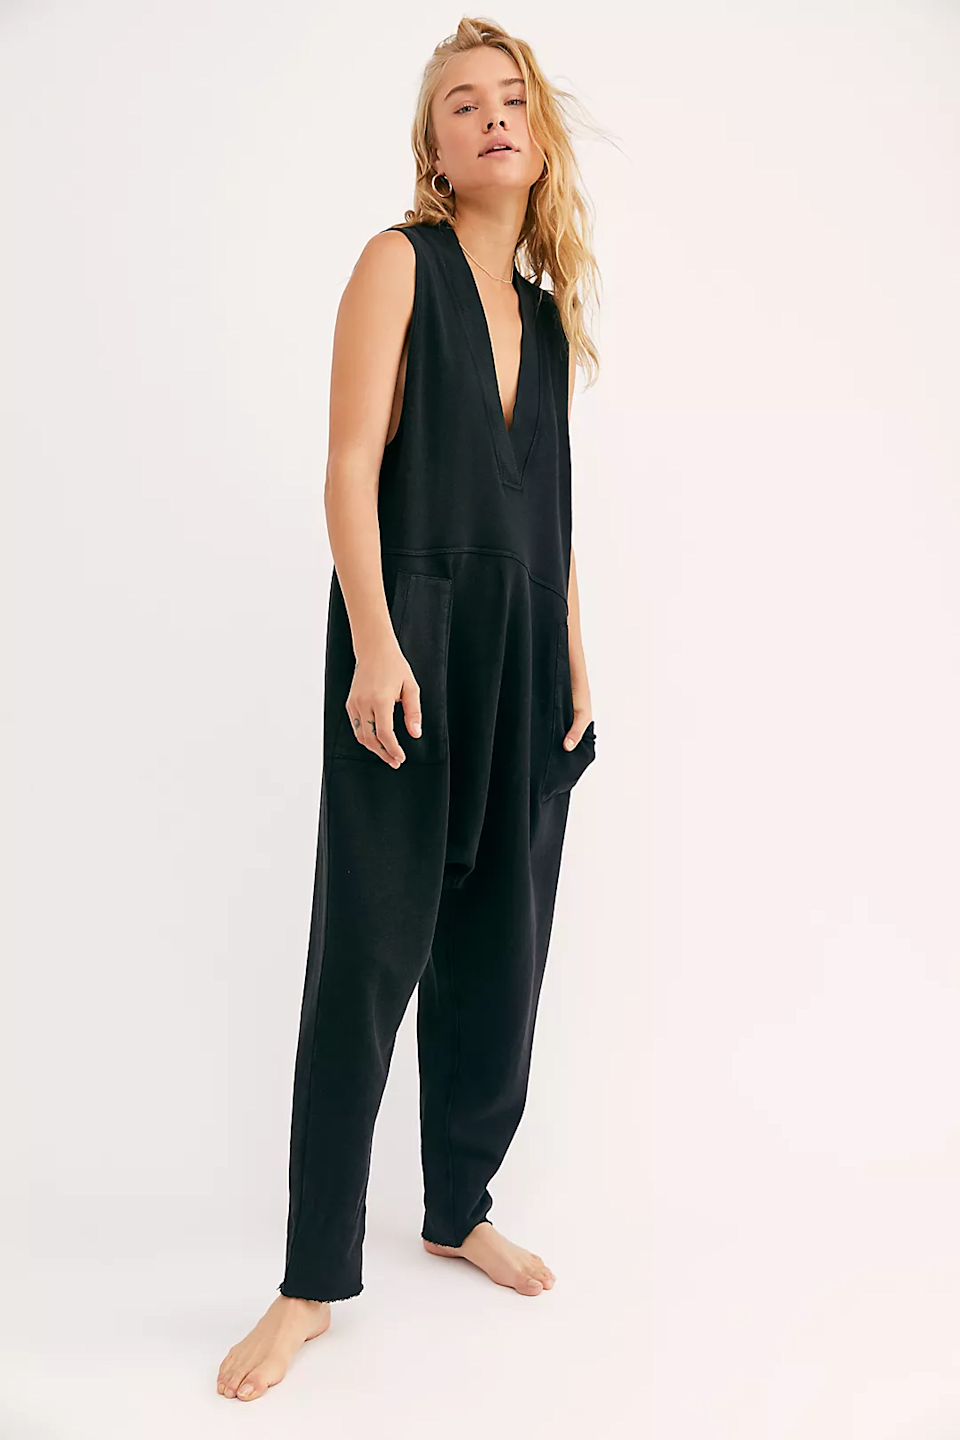 """<br><br><strong>Intimately</strong> Whats Up Onesie, $, available at <a href=""""https://go.skimresources.com/?id=30283X879131&url=https%3A%2F%2Fwww.freepeople.com%2Fshop%2Fwhats-up-onesie%2F"""" rel=""""nofollow noopener"""" target=""""_blank"""" data-ylk=""""slk:Free People"""" class=""""link rapid-noclick-resp"""">Free People</a>"""